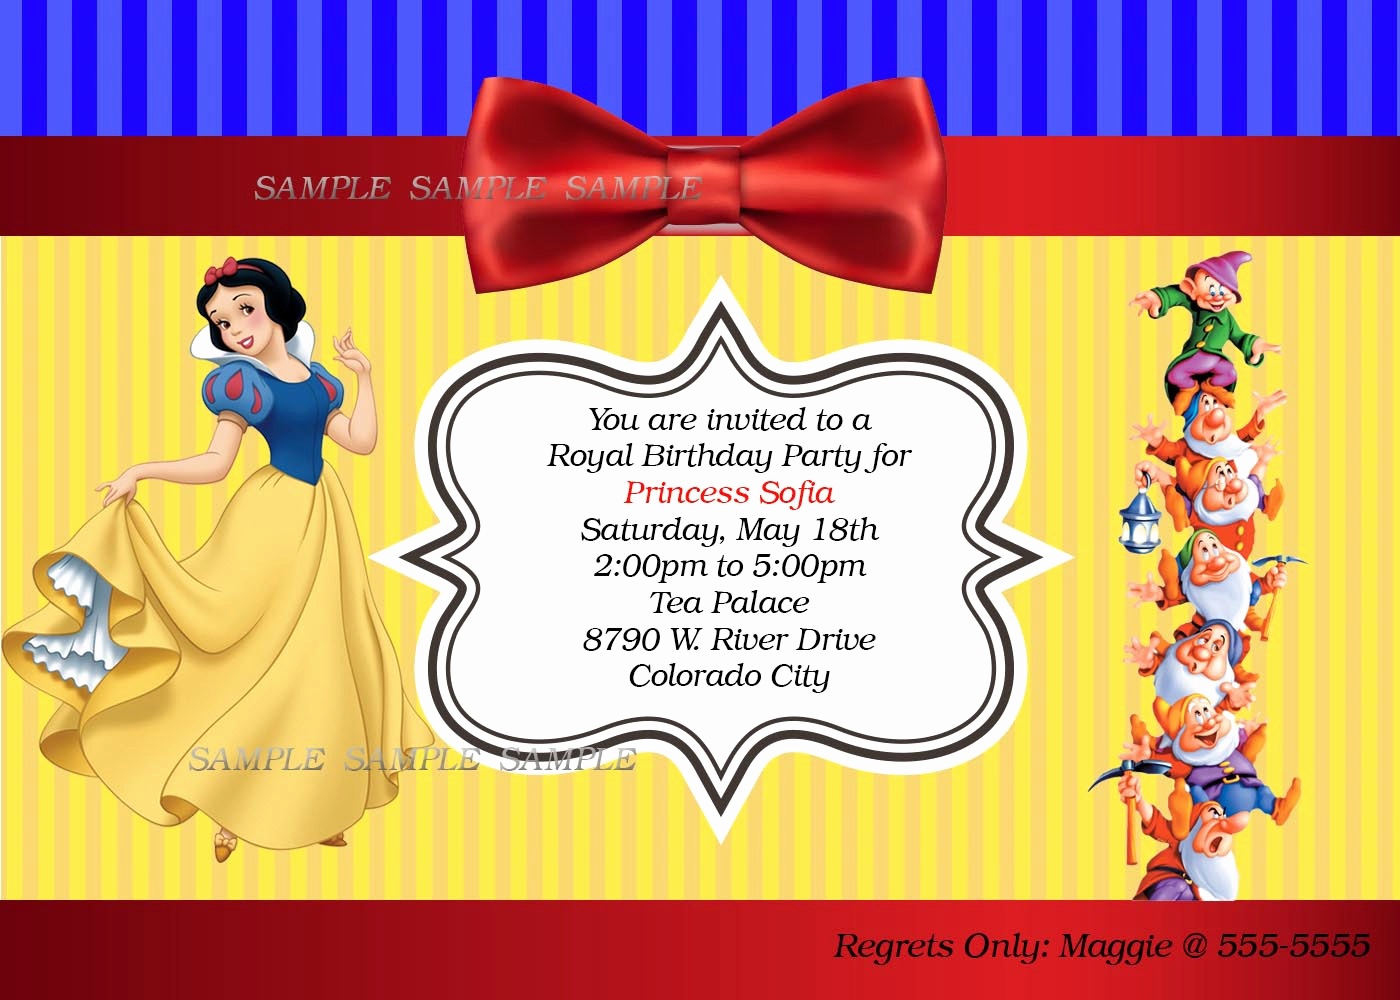 Snow White Invitation Template Awesome Snow White Birthday Party Invitation Wording Letter